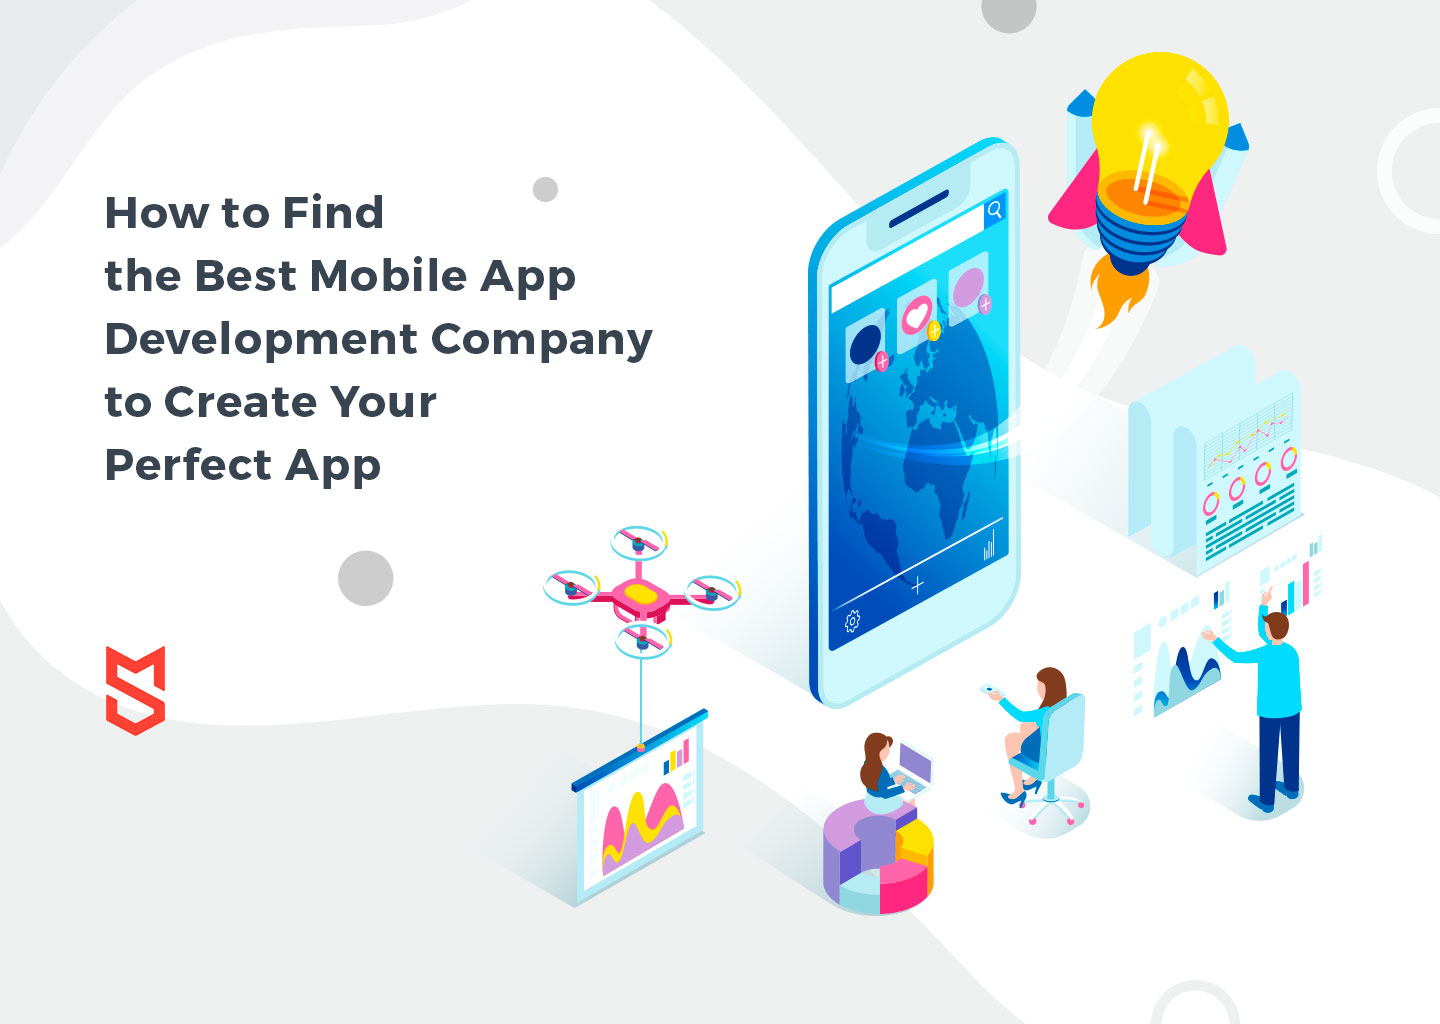 How to Find the Best Mobile App Development Company to Create Your Perfect App